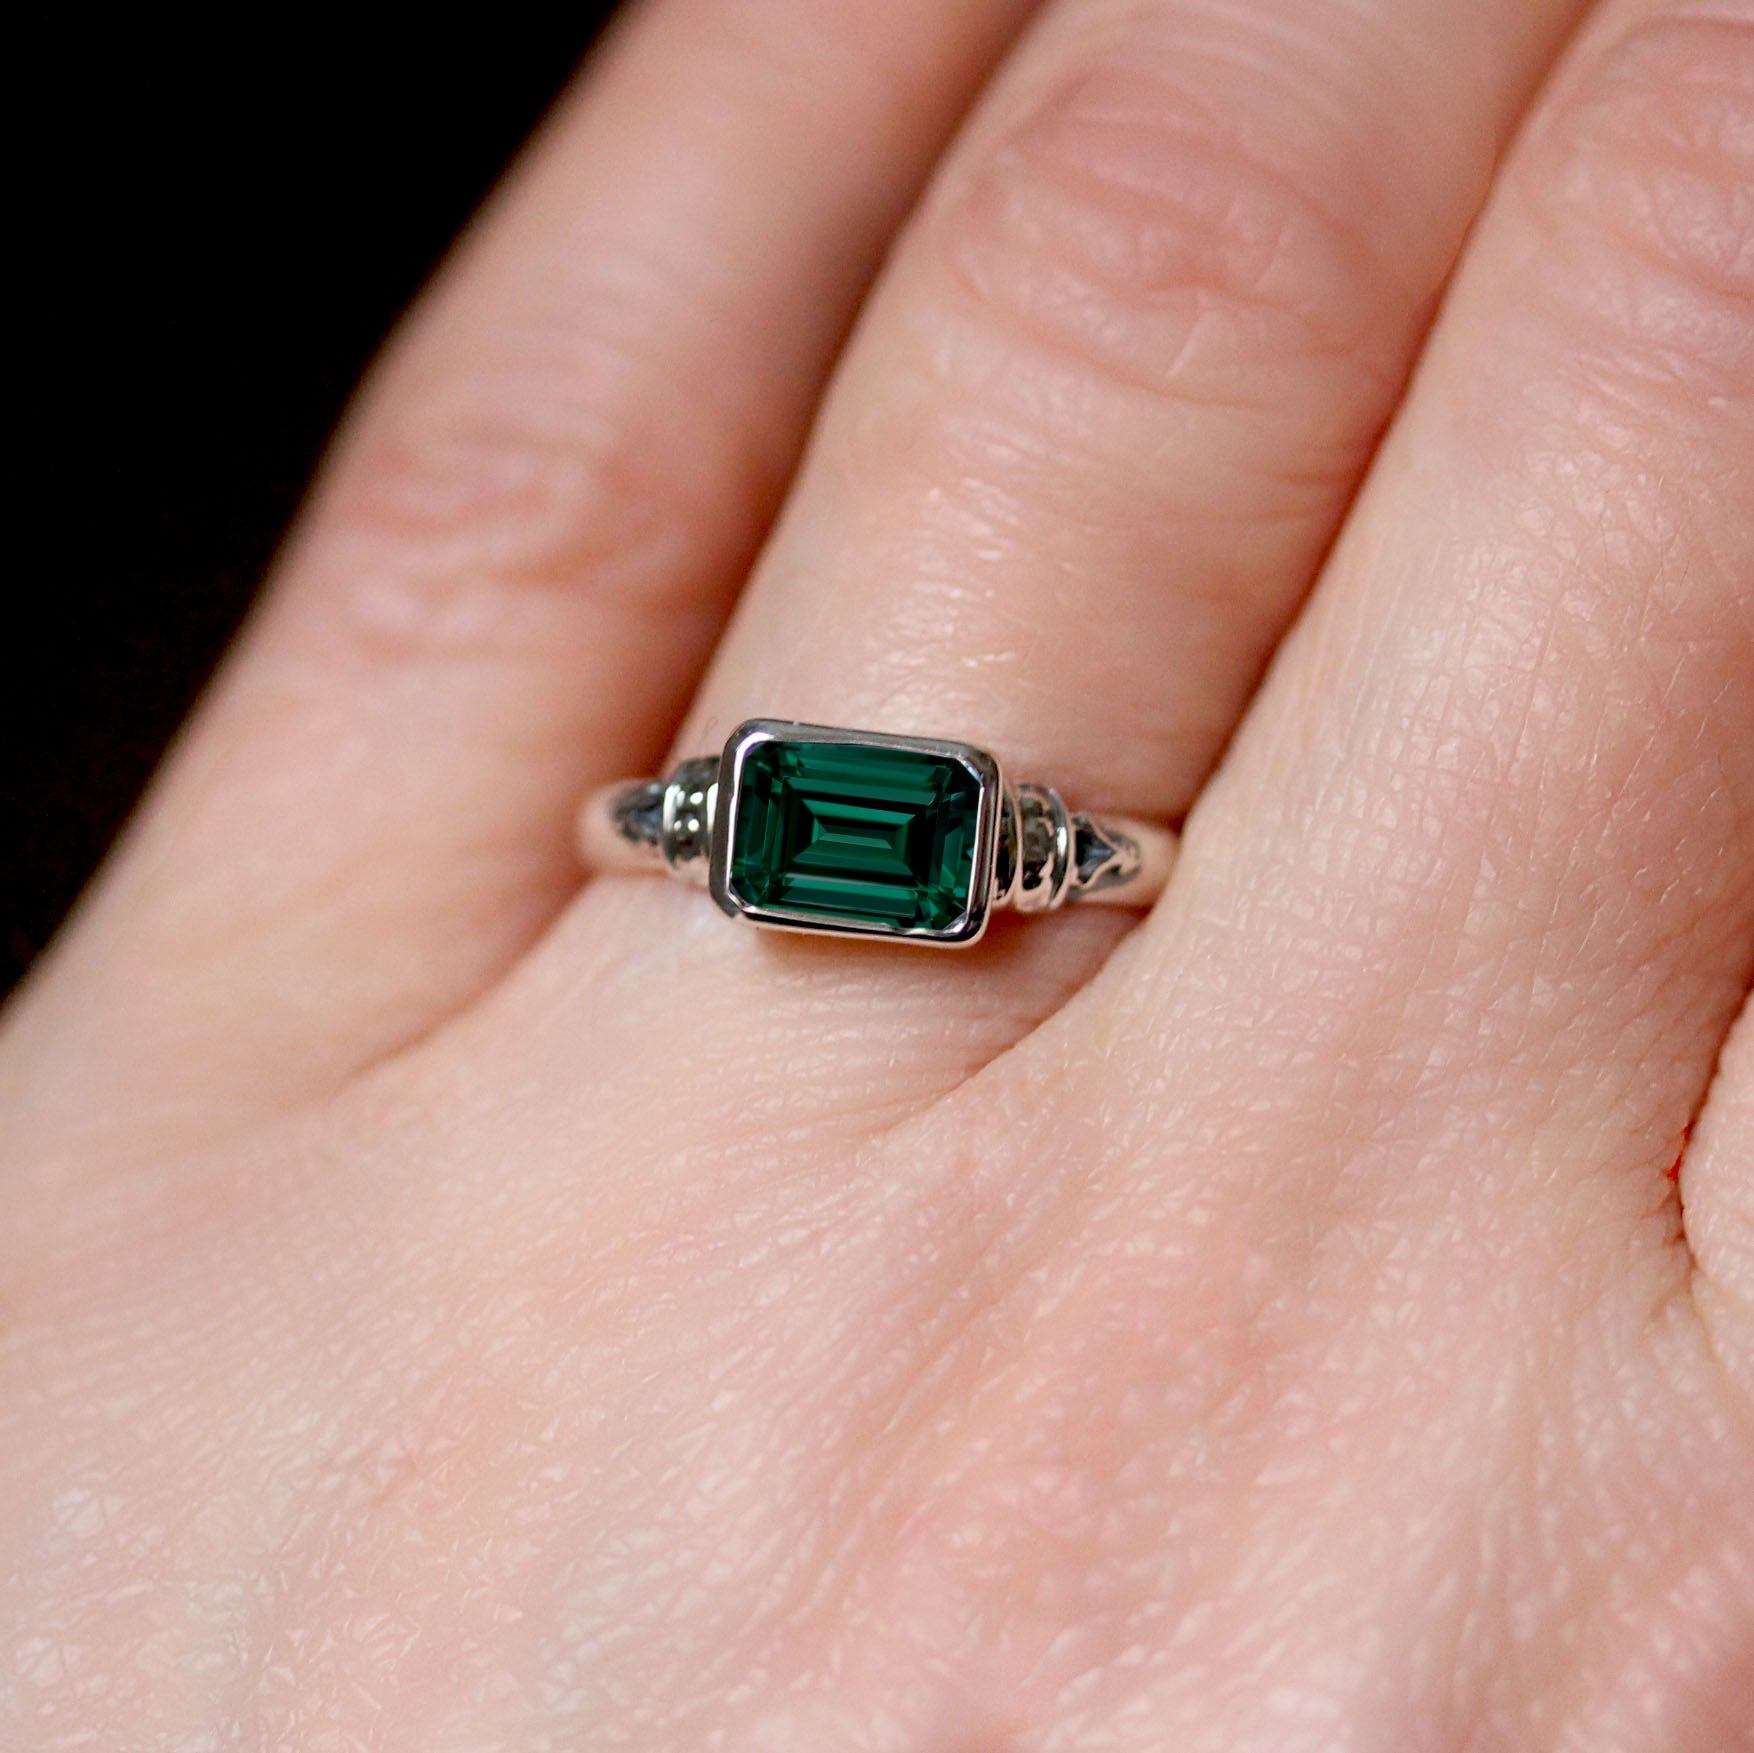 Green emerald cut emerald ring on the hand